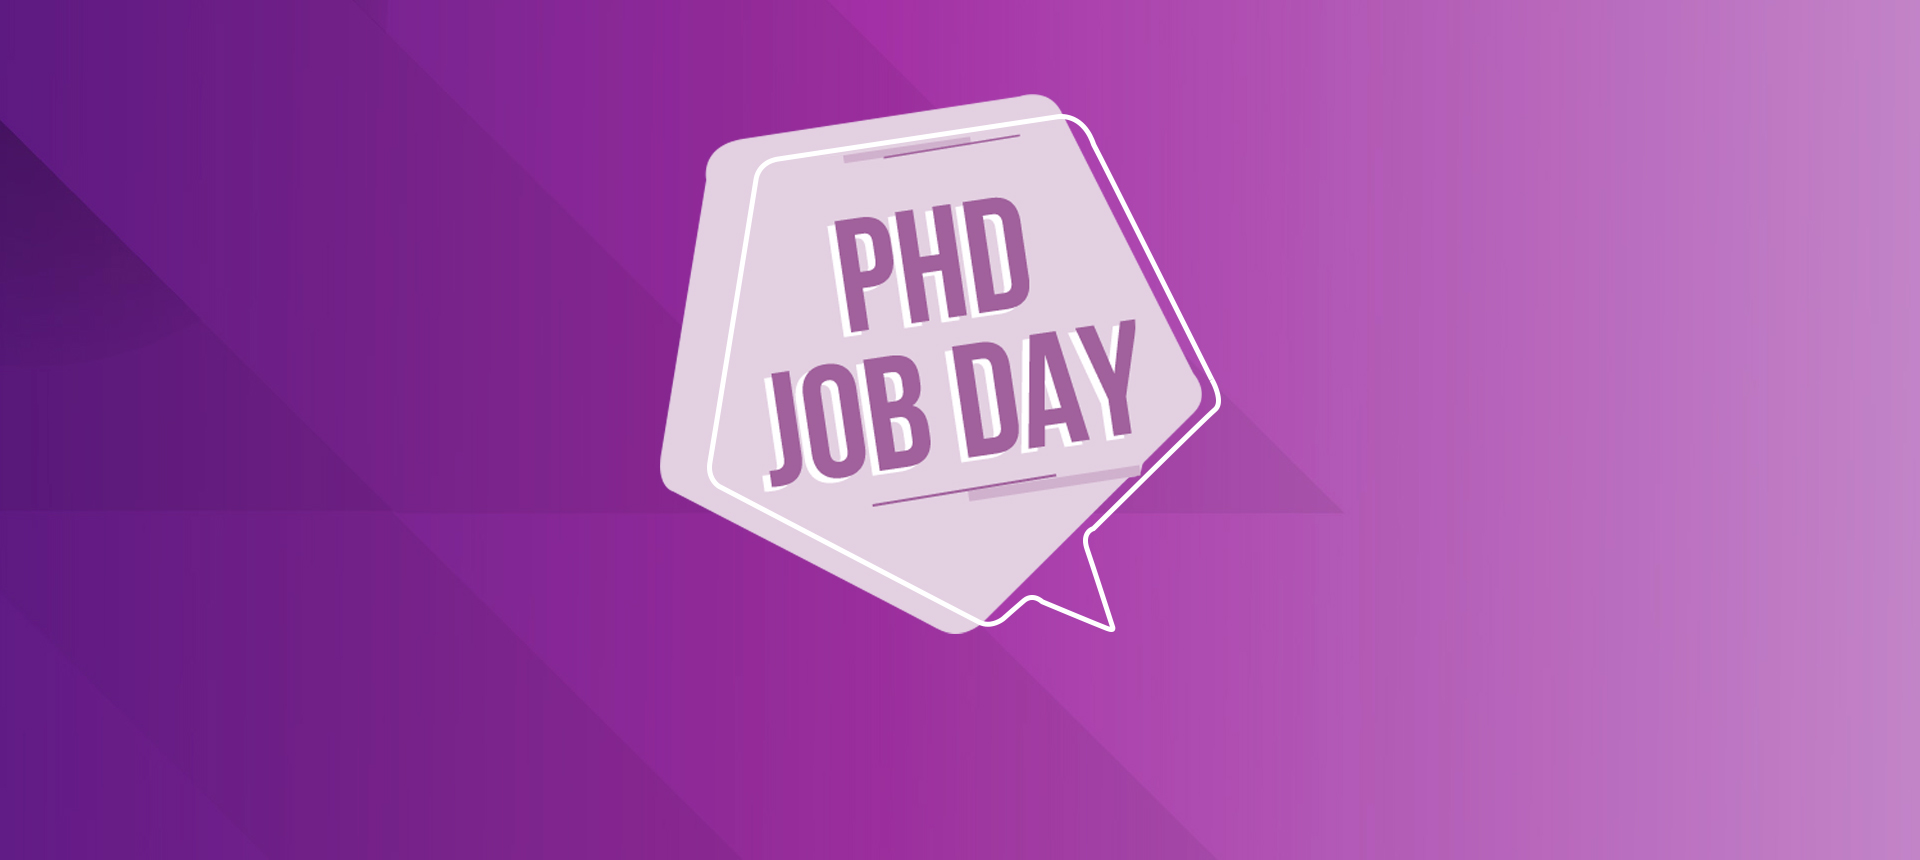 slider phd job day by transuniv